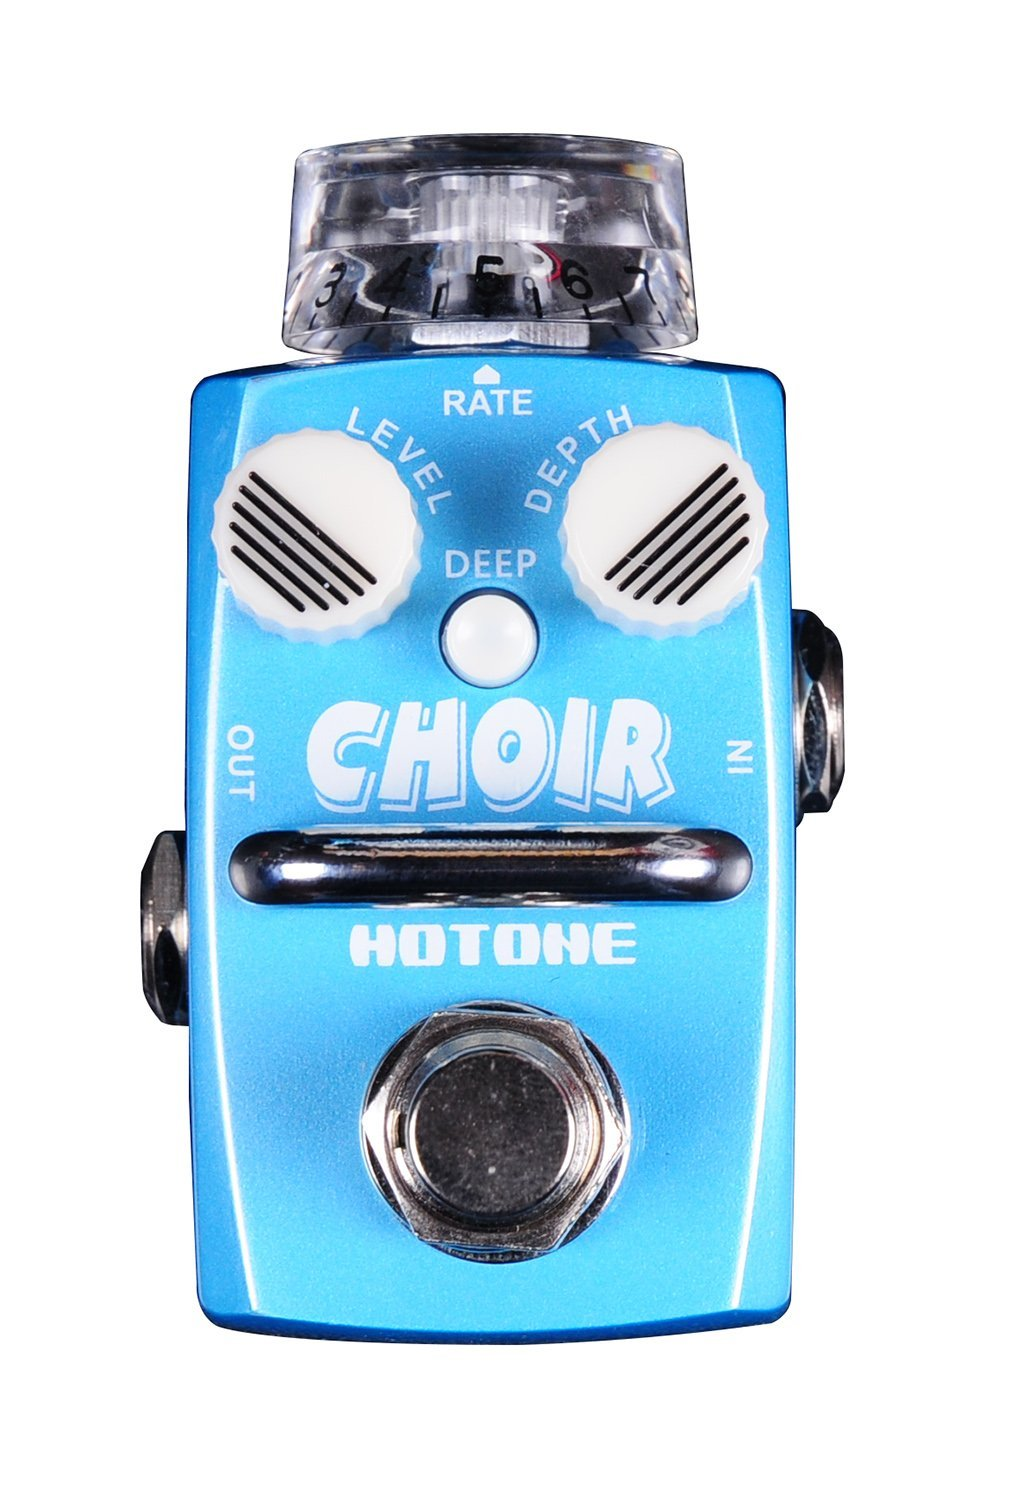 Hotone Skyline CHOIR Chorus Guitar Stompbox with 2 Noctilucent Small Knobs (TPSCH1)